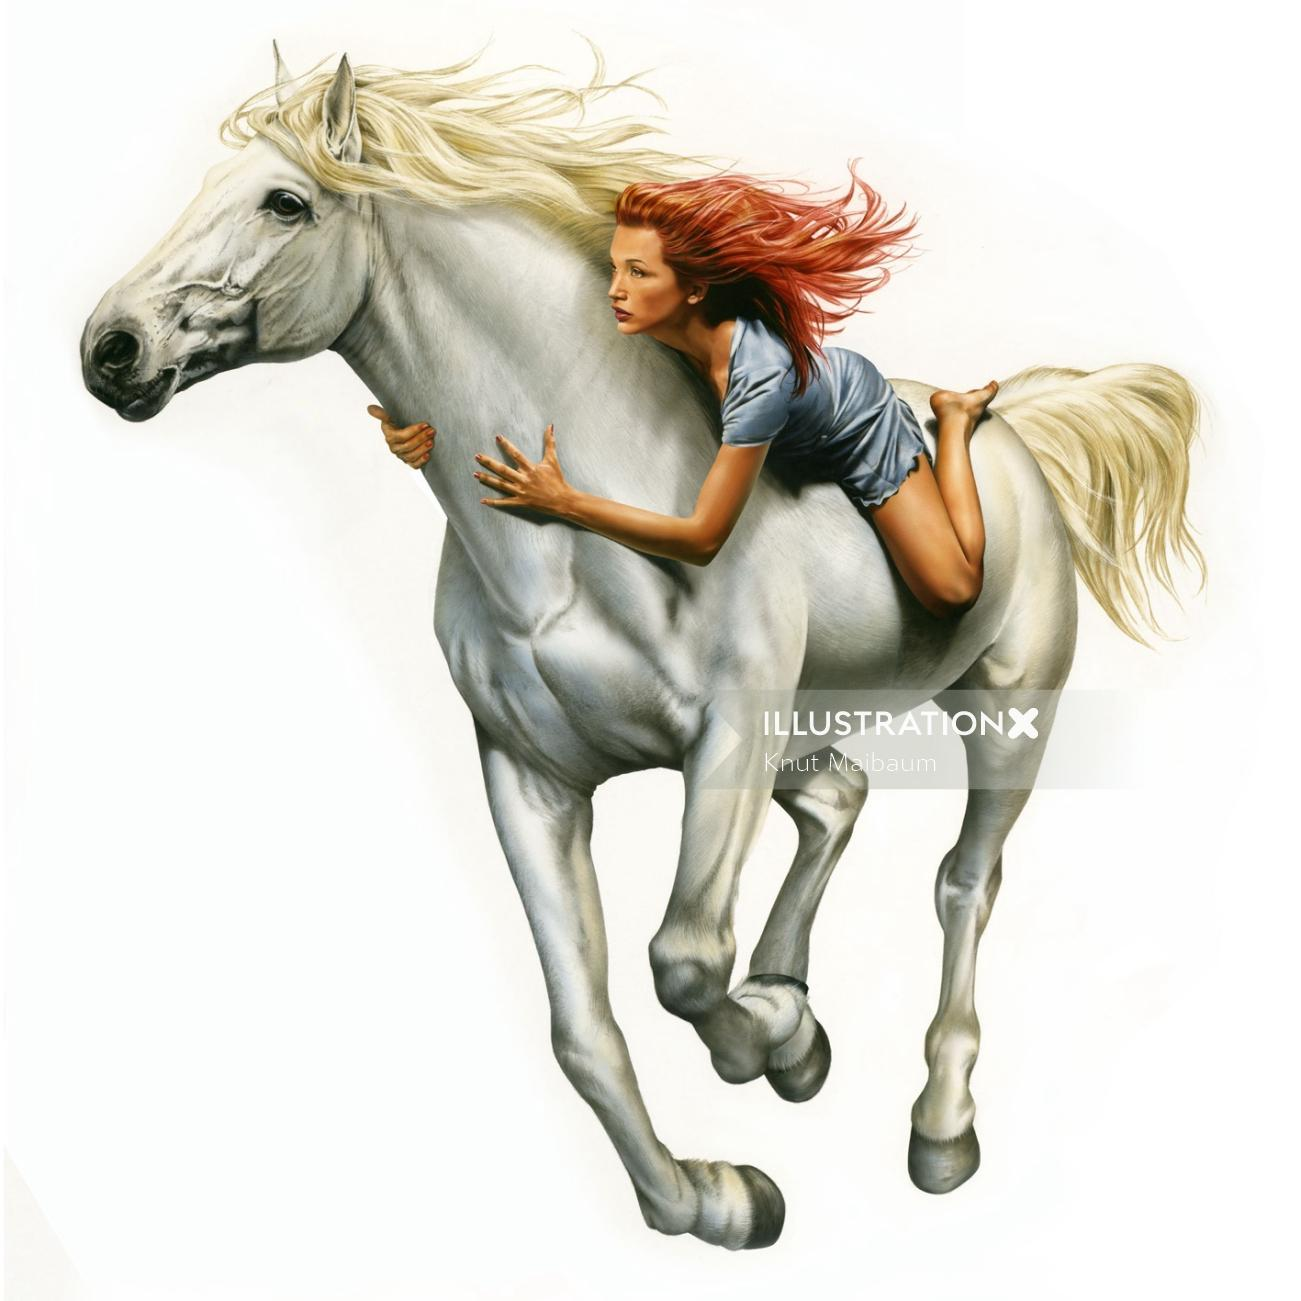 White horse with red haired girl illustration